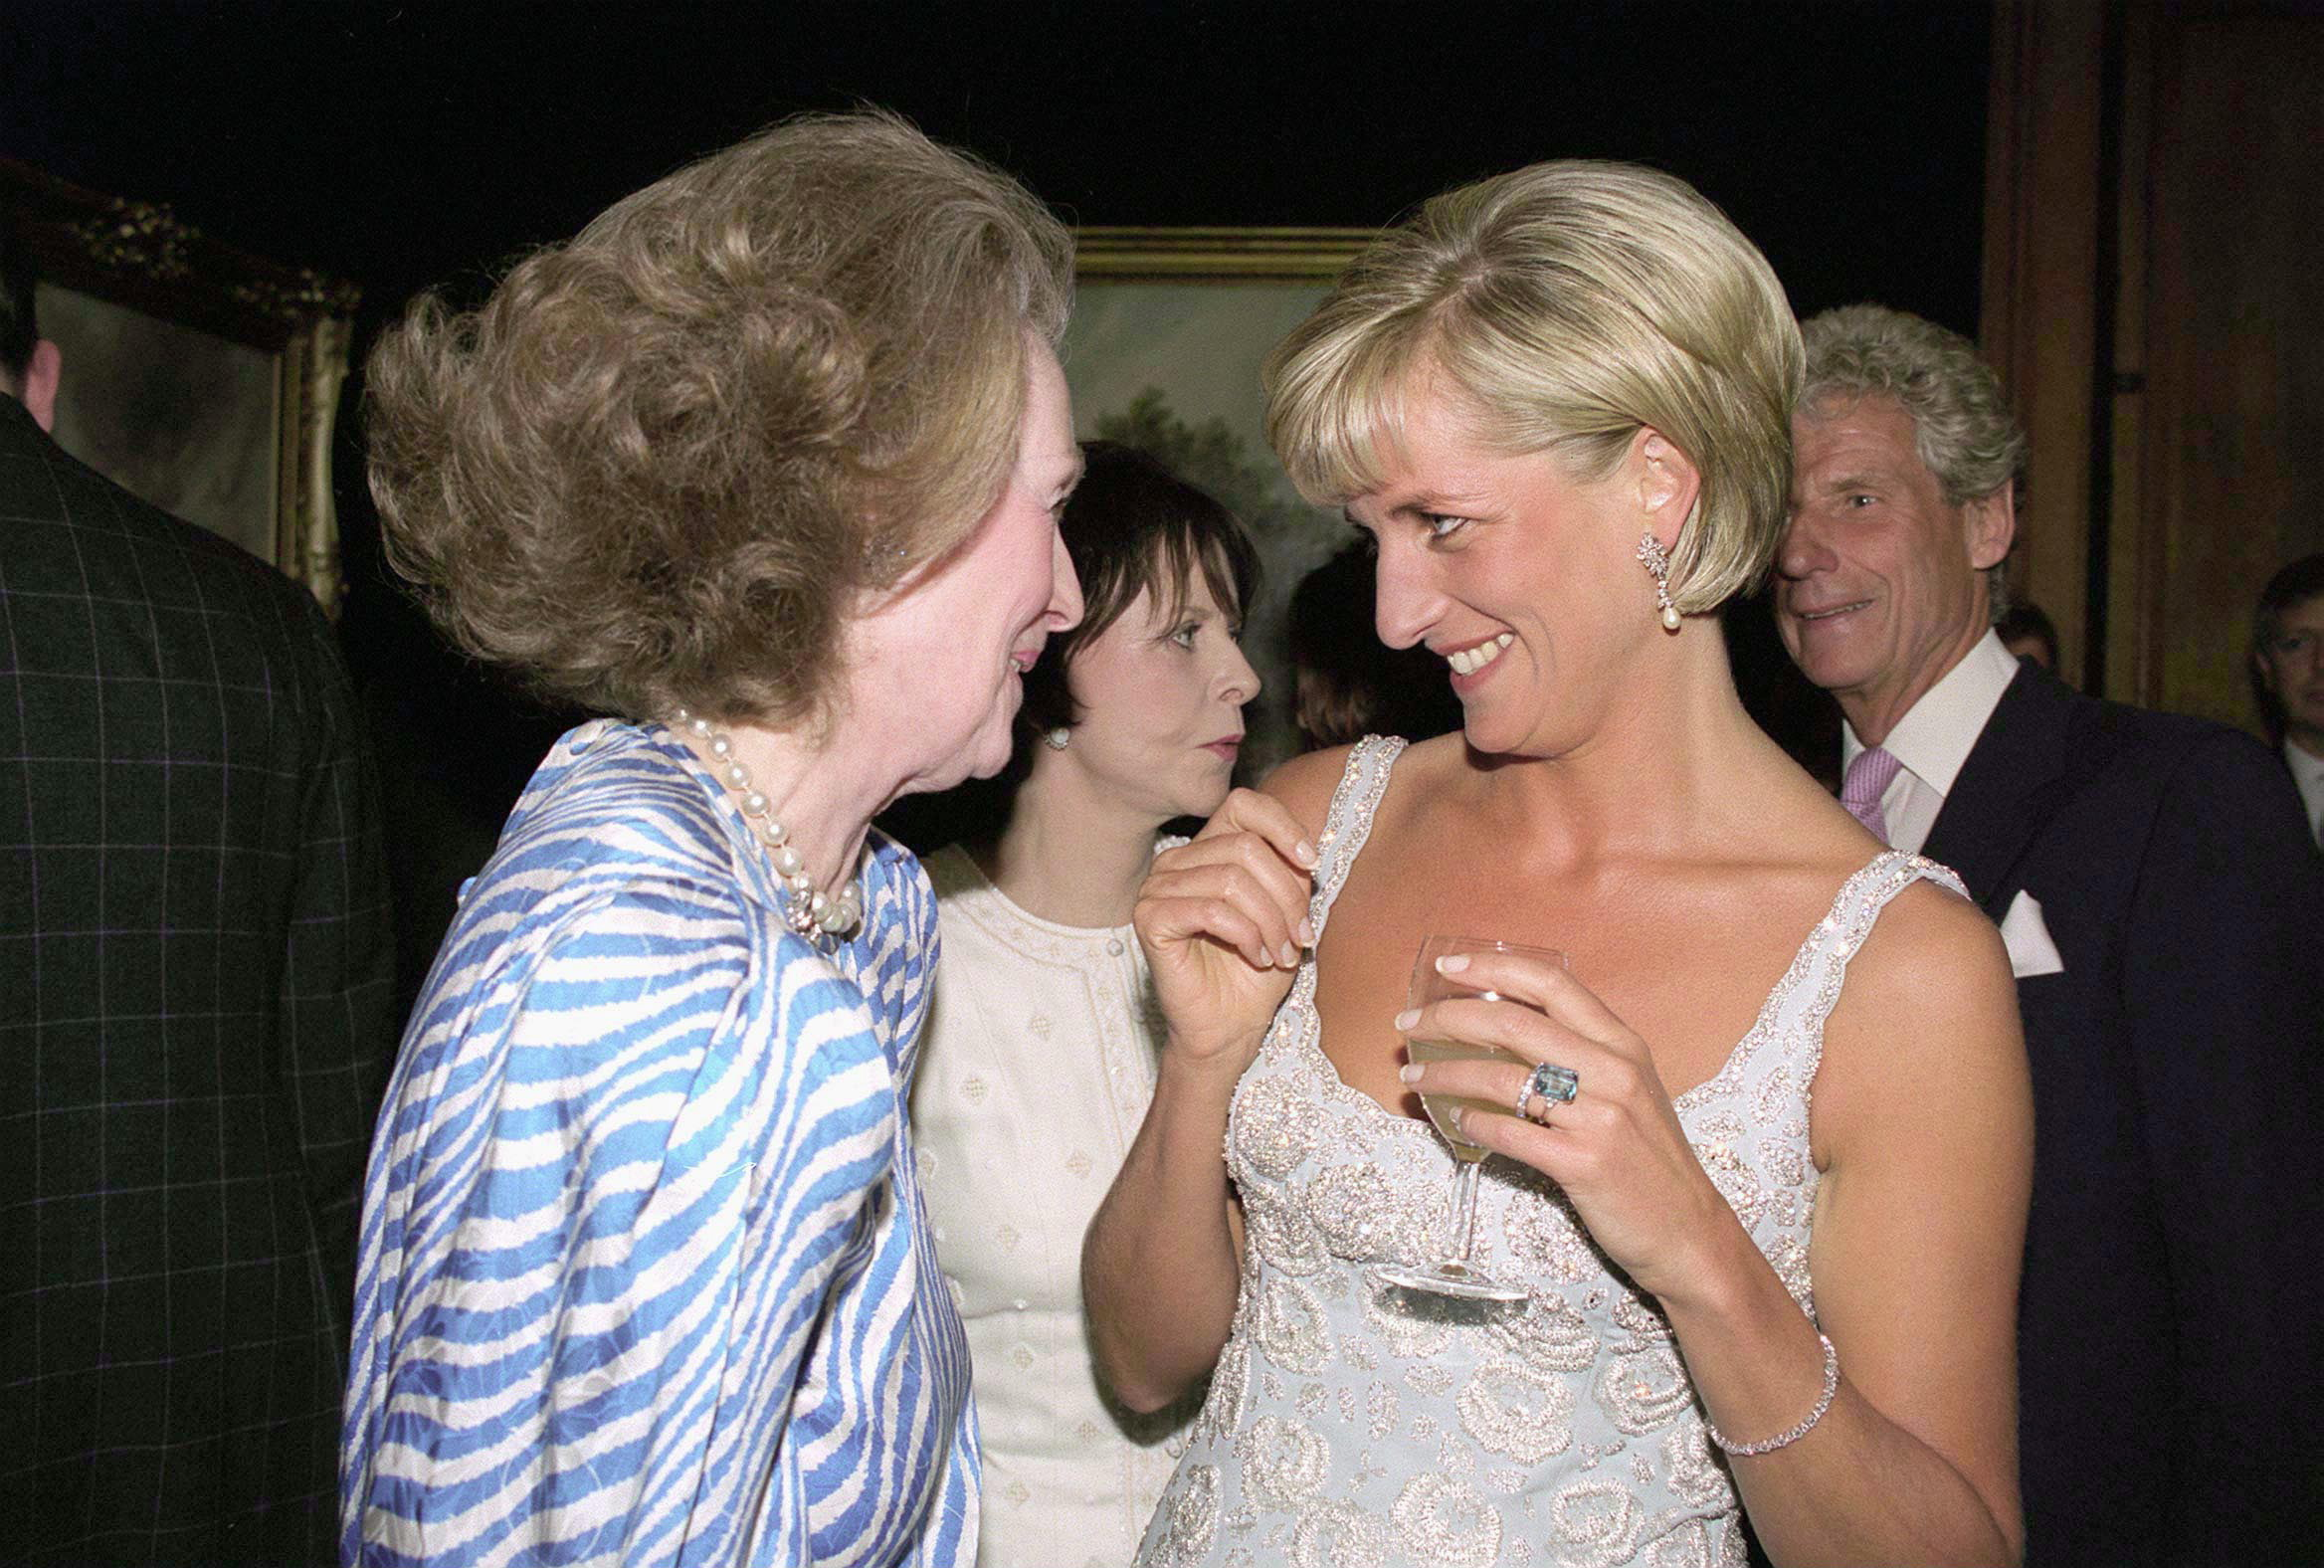 Diana, Princess Of Wales at A Private Viewing And Reception At Christies In Aid Of The Aids Crisis Trust And The Royal Marsden Hospital Cancer Fund. With her Stepmother Raine, Comtesse De Chambrun.  (Photo by Tim Graham/Getty Images)